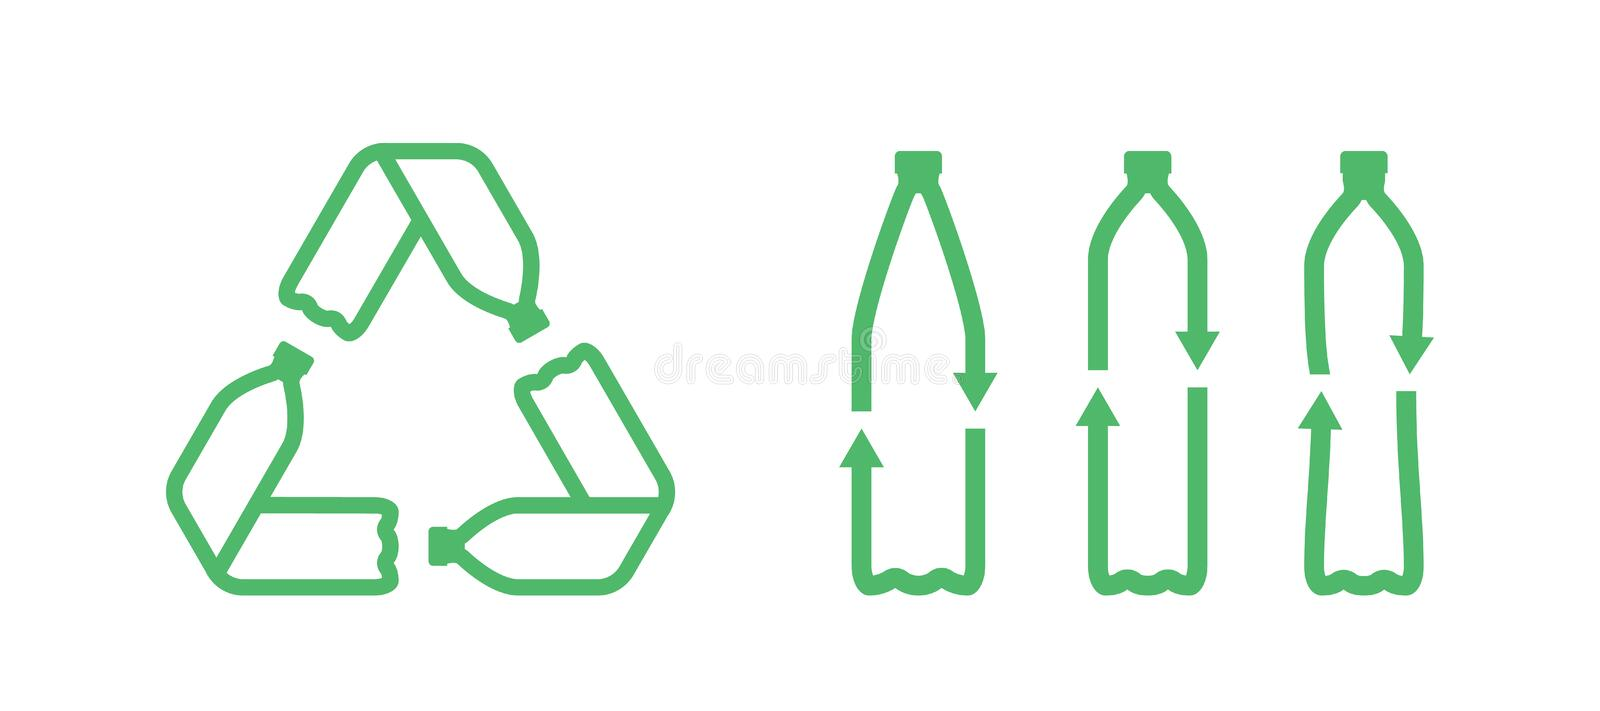 Pet bottles form mobius loop or recycling symbol with arrows stock illustration